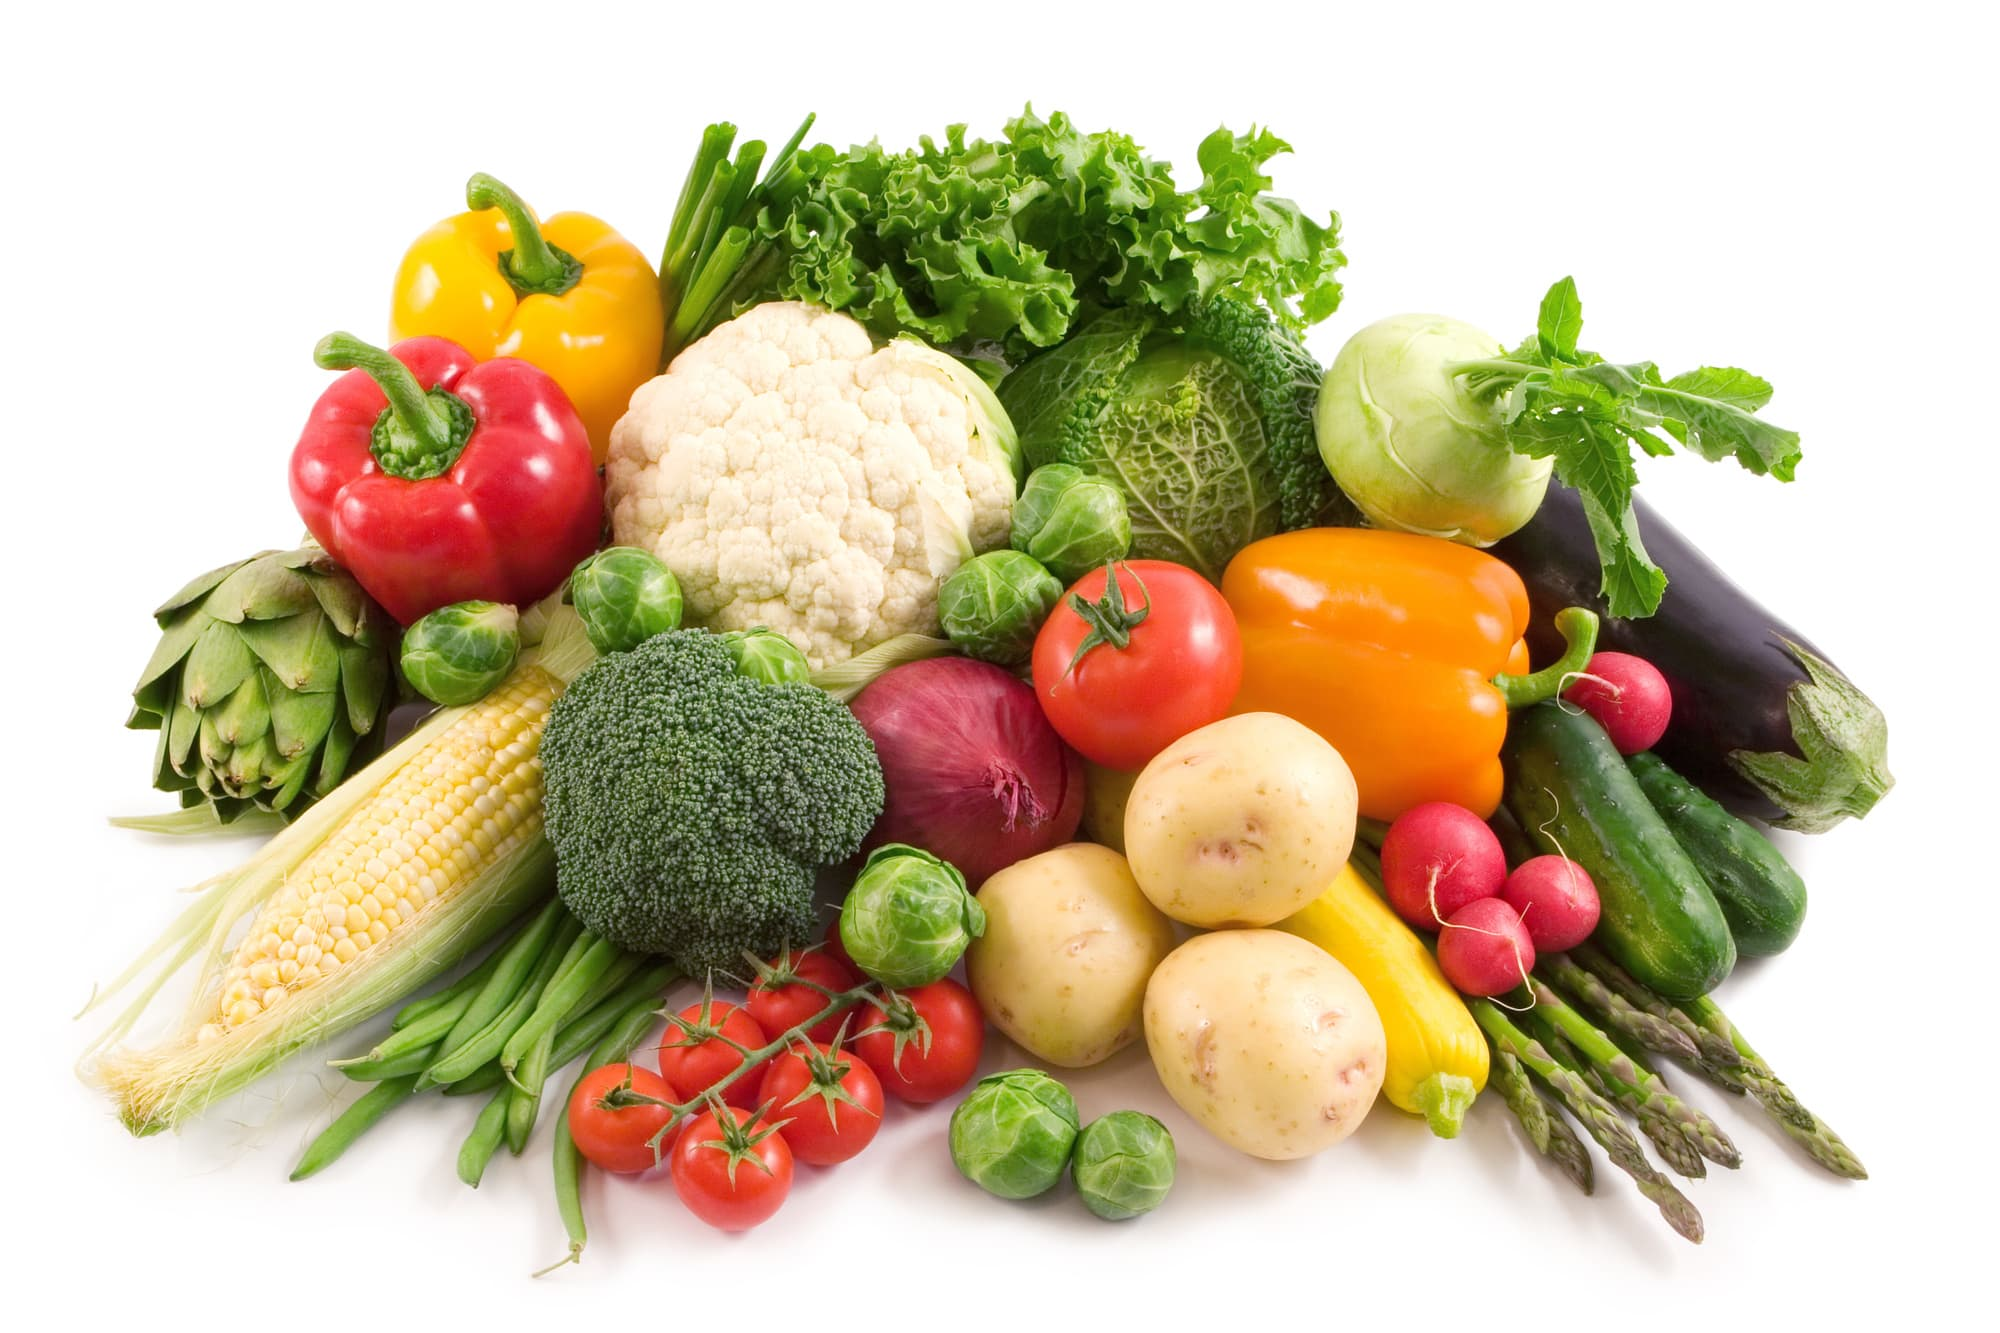 Top 10 Healthiest Vegetables to Include in Your Vegan Diet